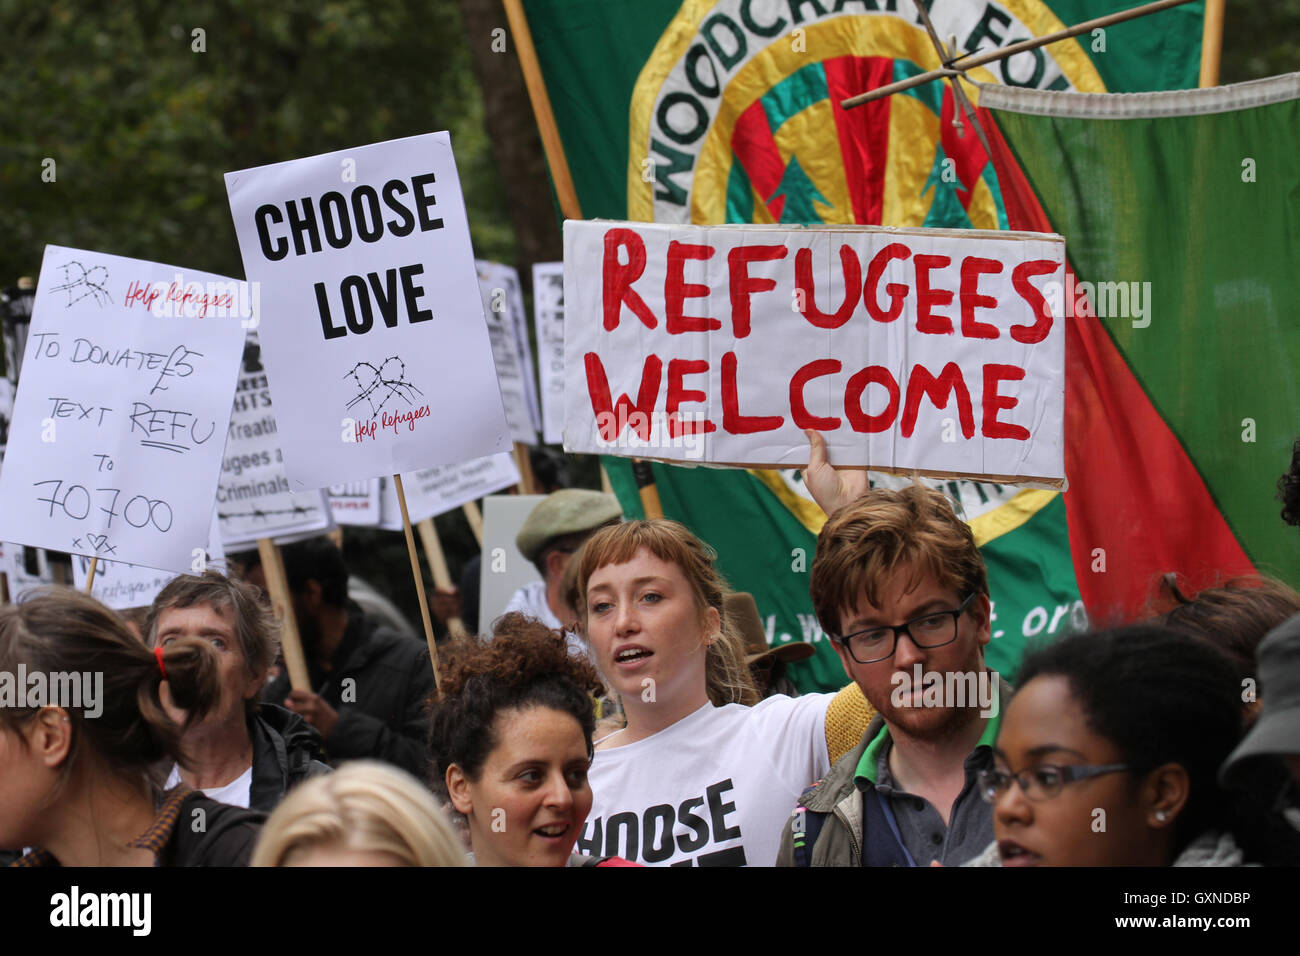 LONDON, UK - September 17: ​Thousands of people march through London to show solidarity with Refugees on 1​7 September - Stock Image